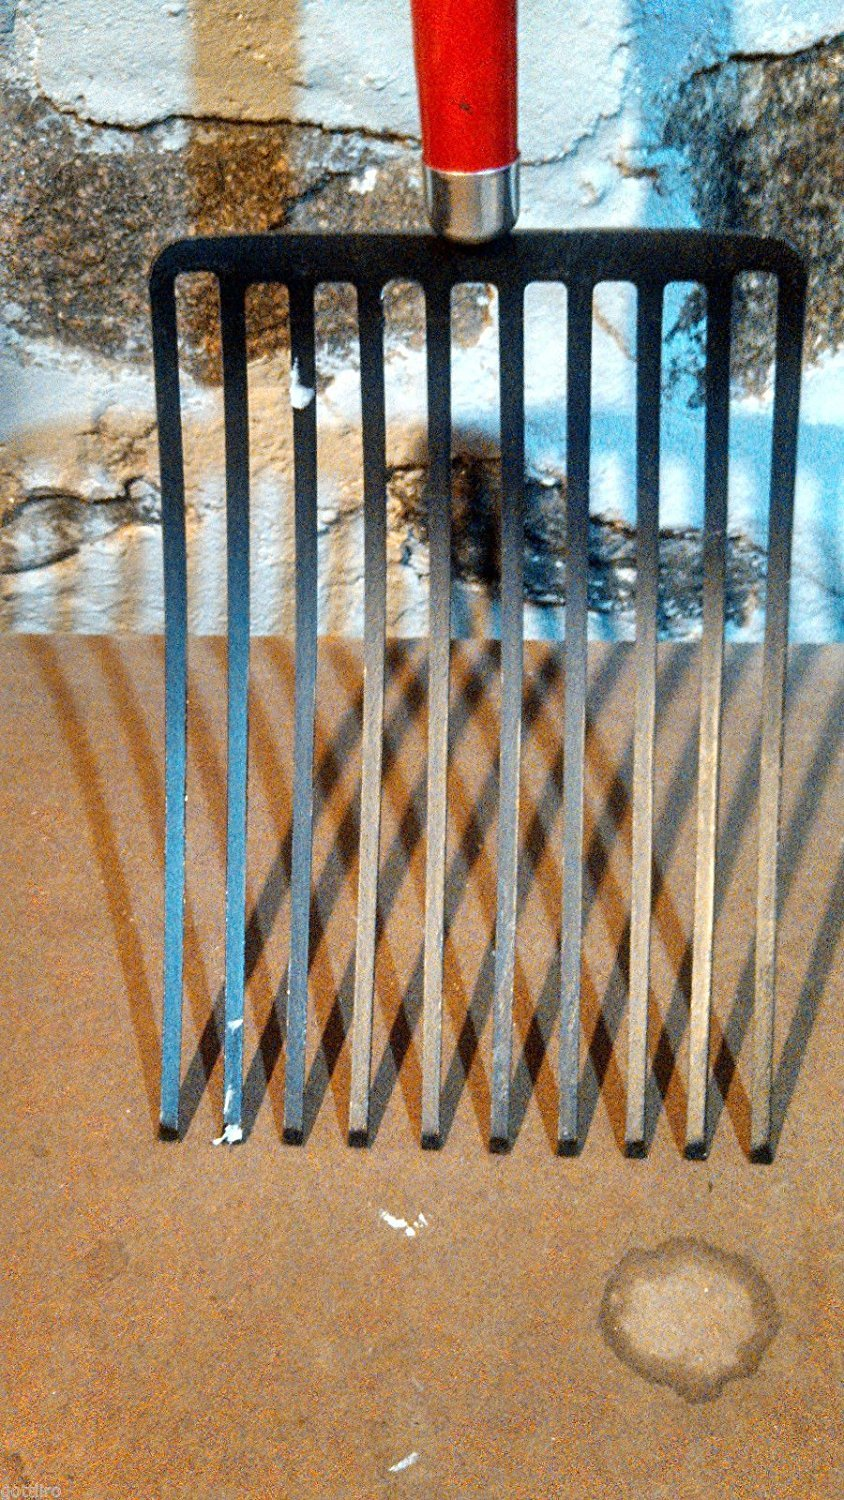 Heavy Duty Professional Duty Clam Fork - For Clamming by RAZORBACK (Image #2)